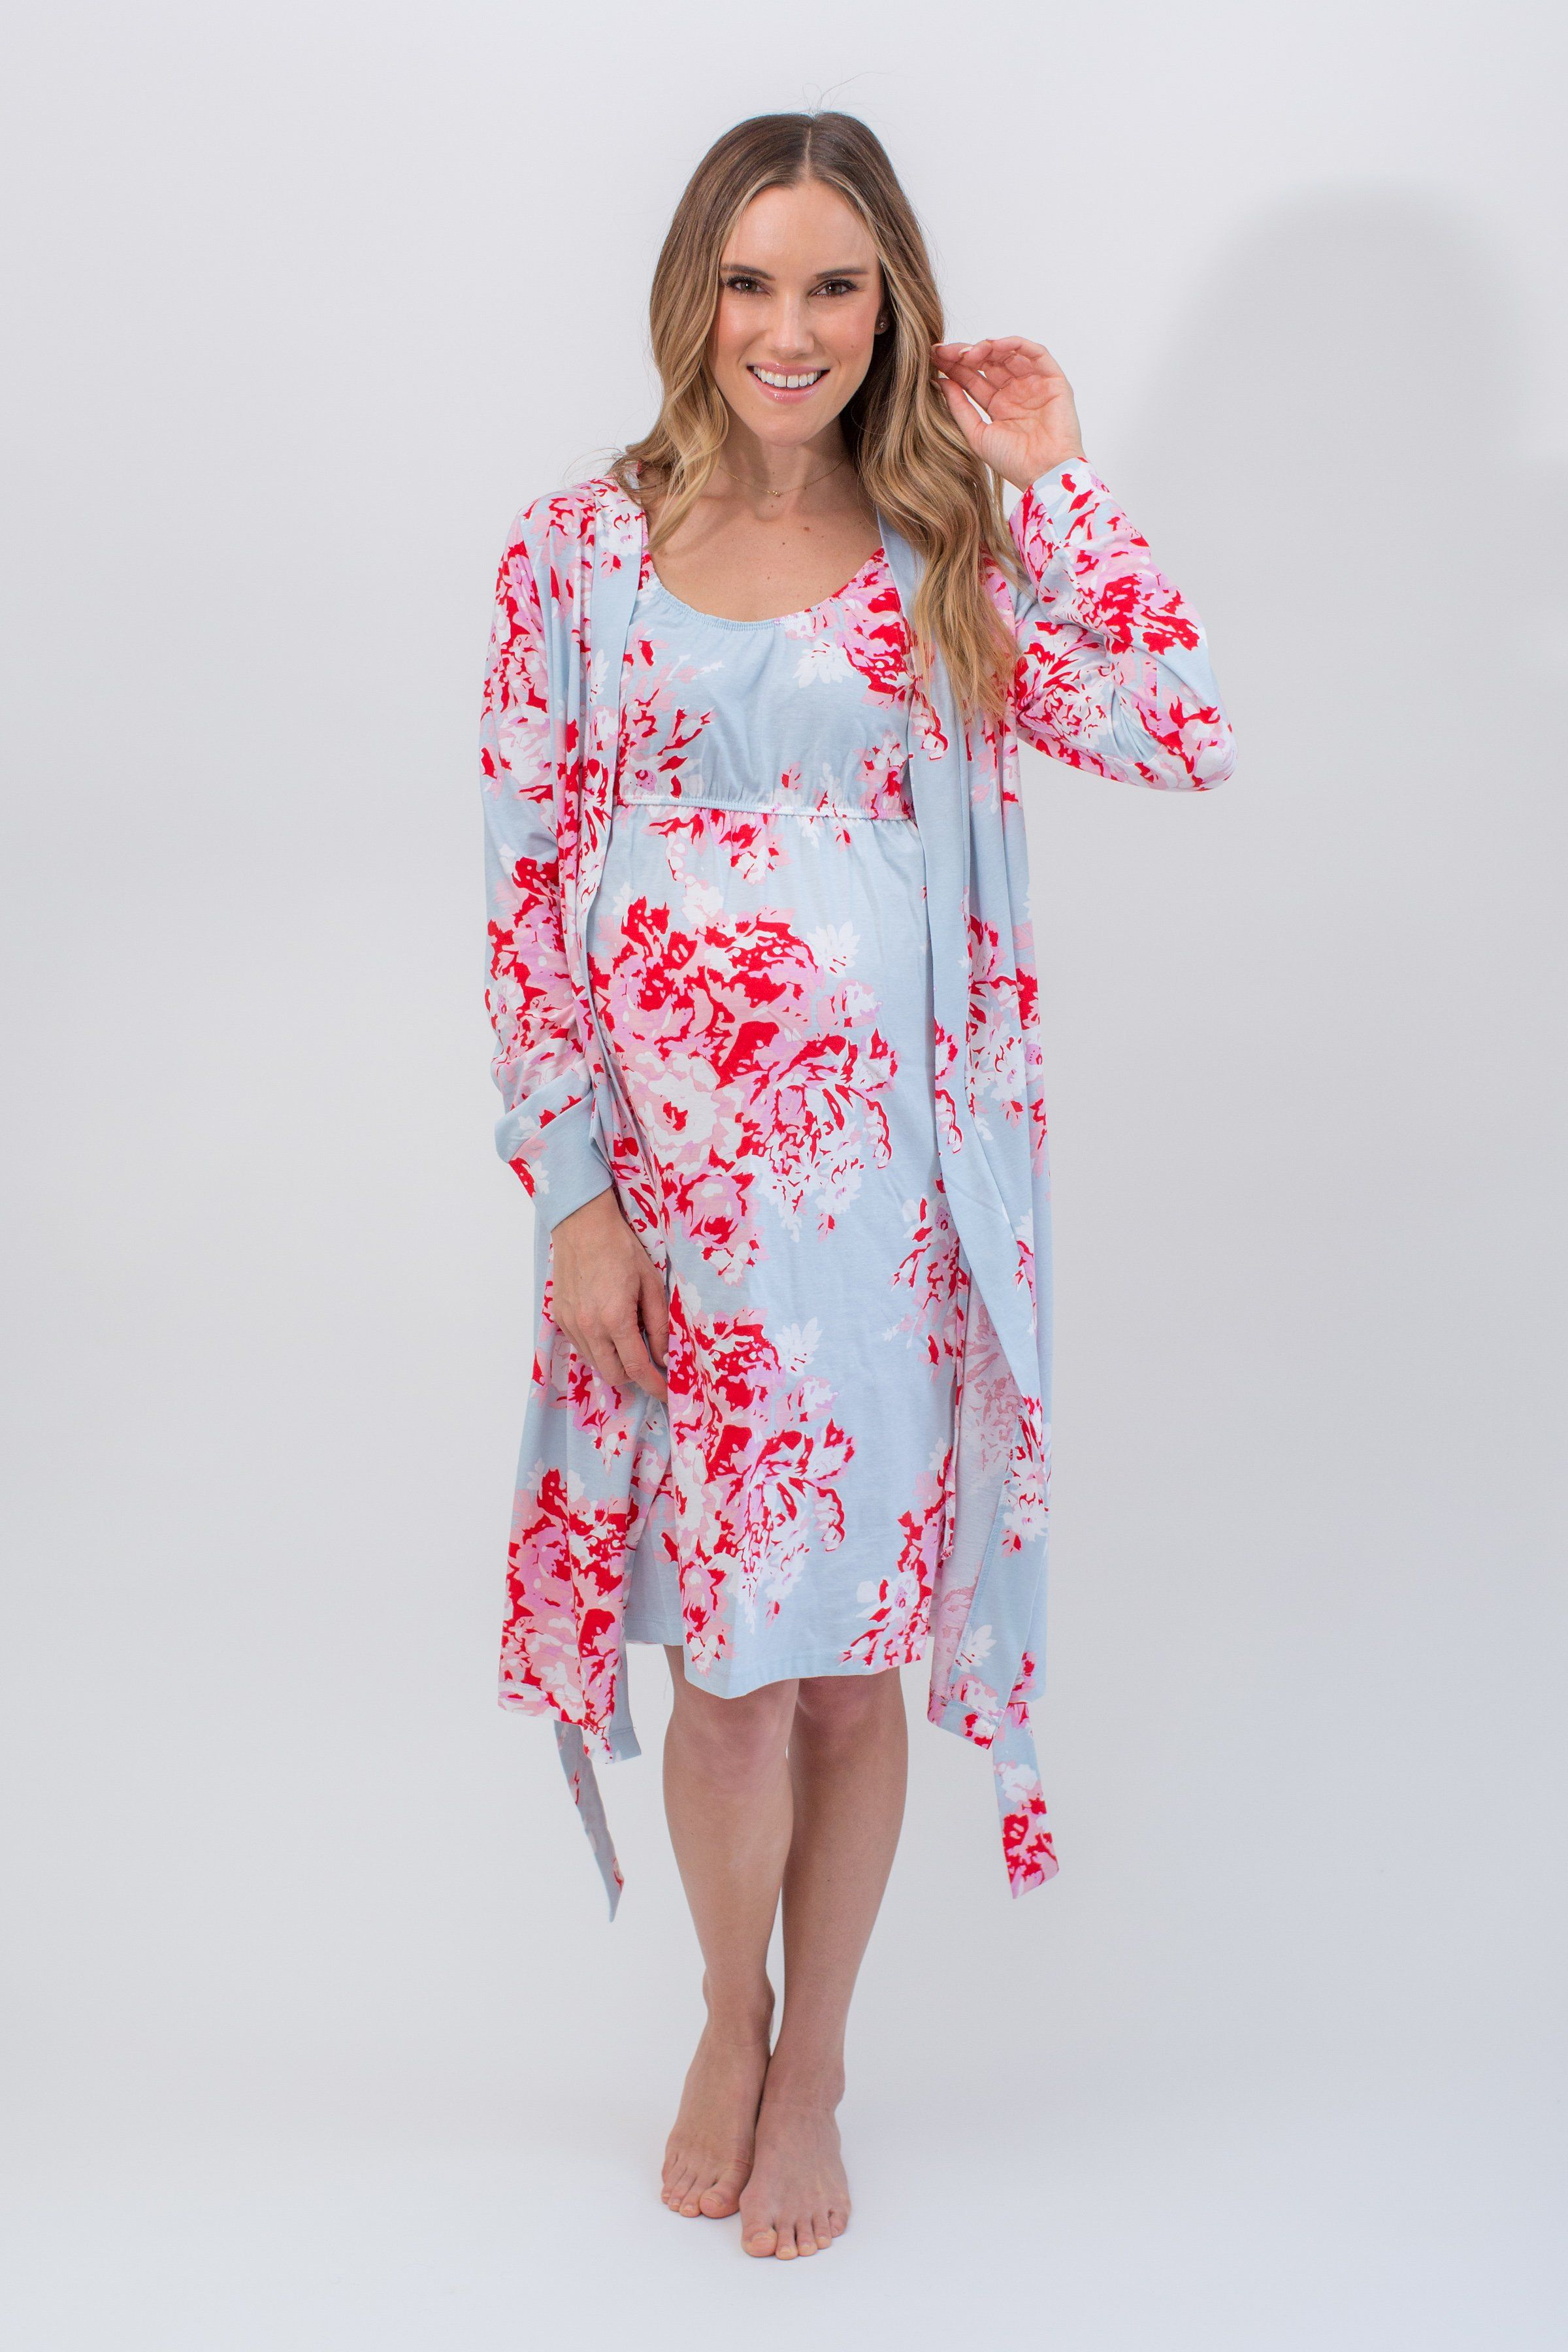 64bd941ff5c0 Buy as a set   save This eye catching nightdress with matching robe is  designed to make you feel gorgeous   comfy whilst pregnant or nursing.